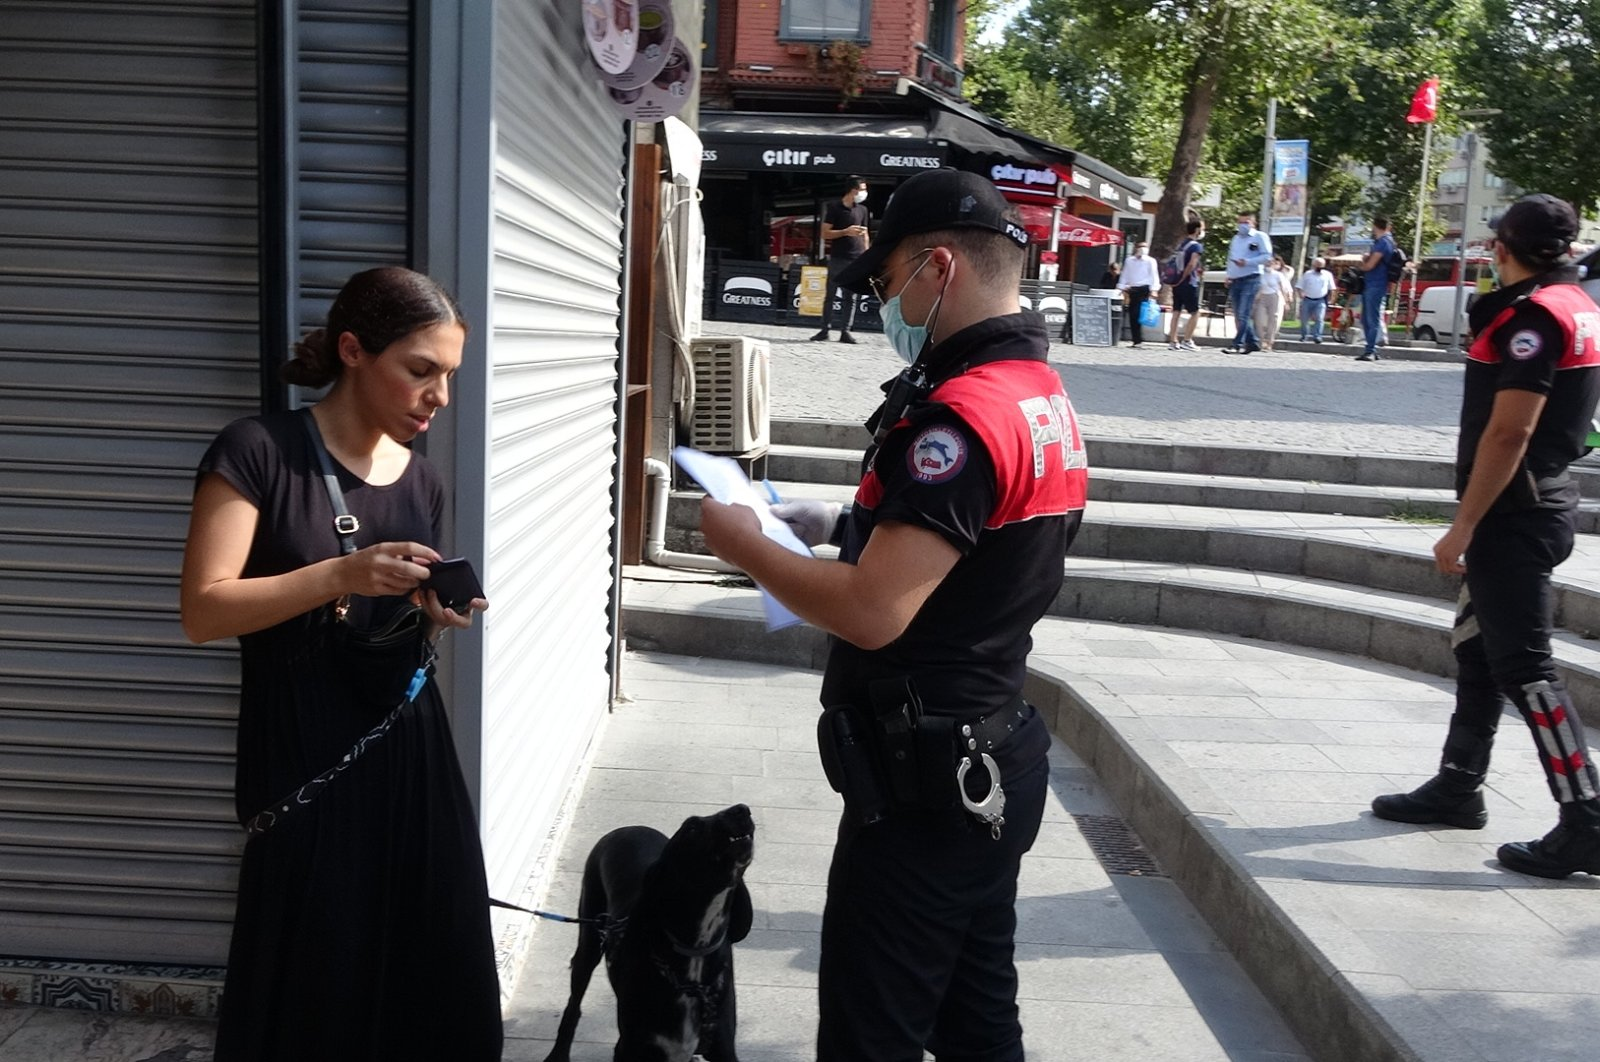 A police officer issues a fine to a woman not wearing a mask in the Beşiktaş district of Istanbul, Turkey, Aug. 6, 2020. (DHA Photo)